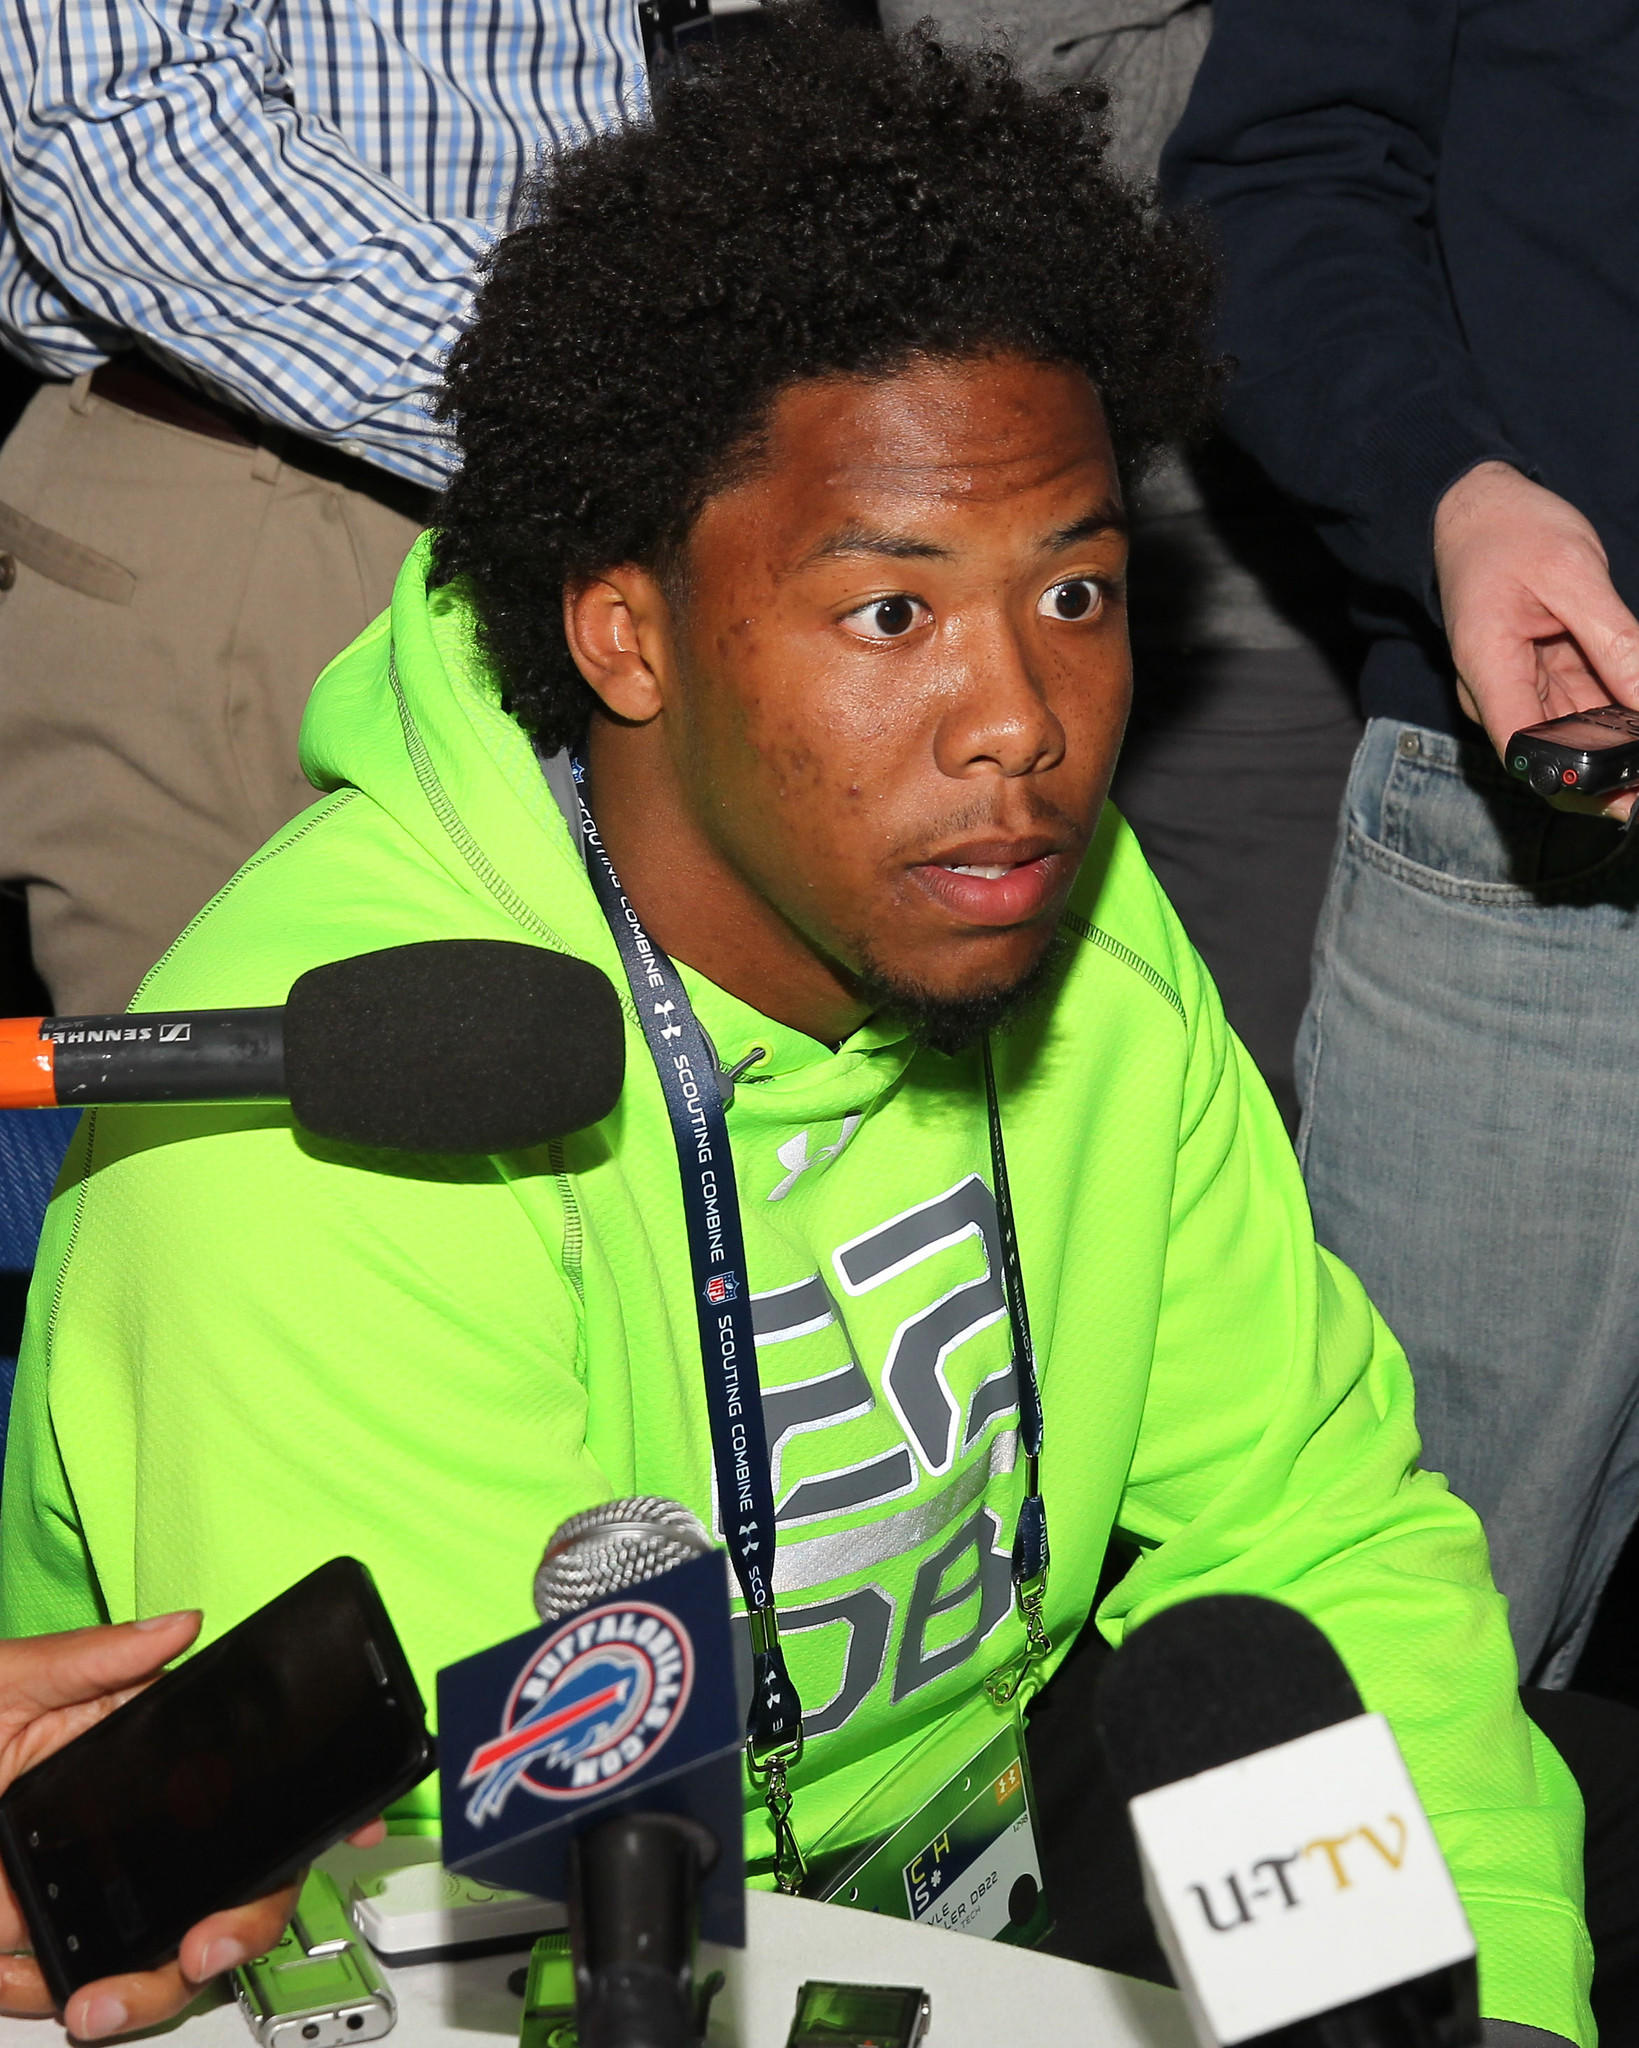 Defensive back Kyle Fuller speaks to the media during the 2014 NFL scouting combine in Indianapolis on Sunday.